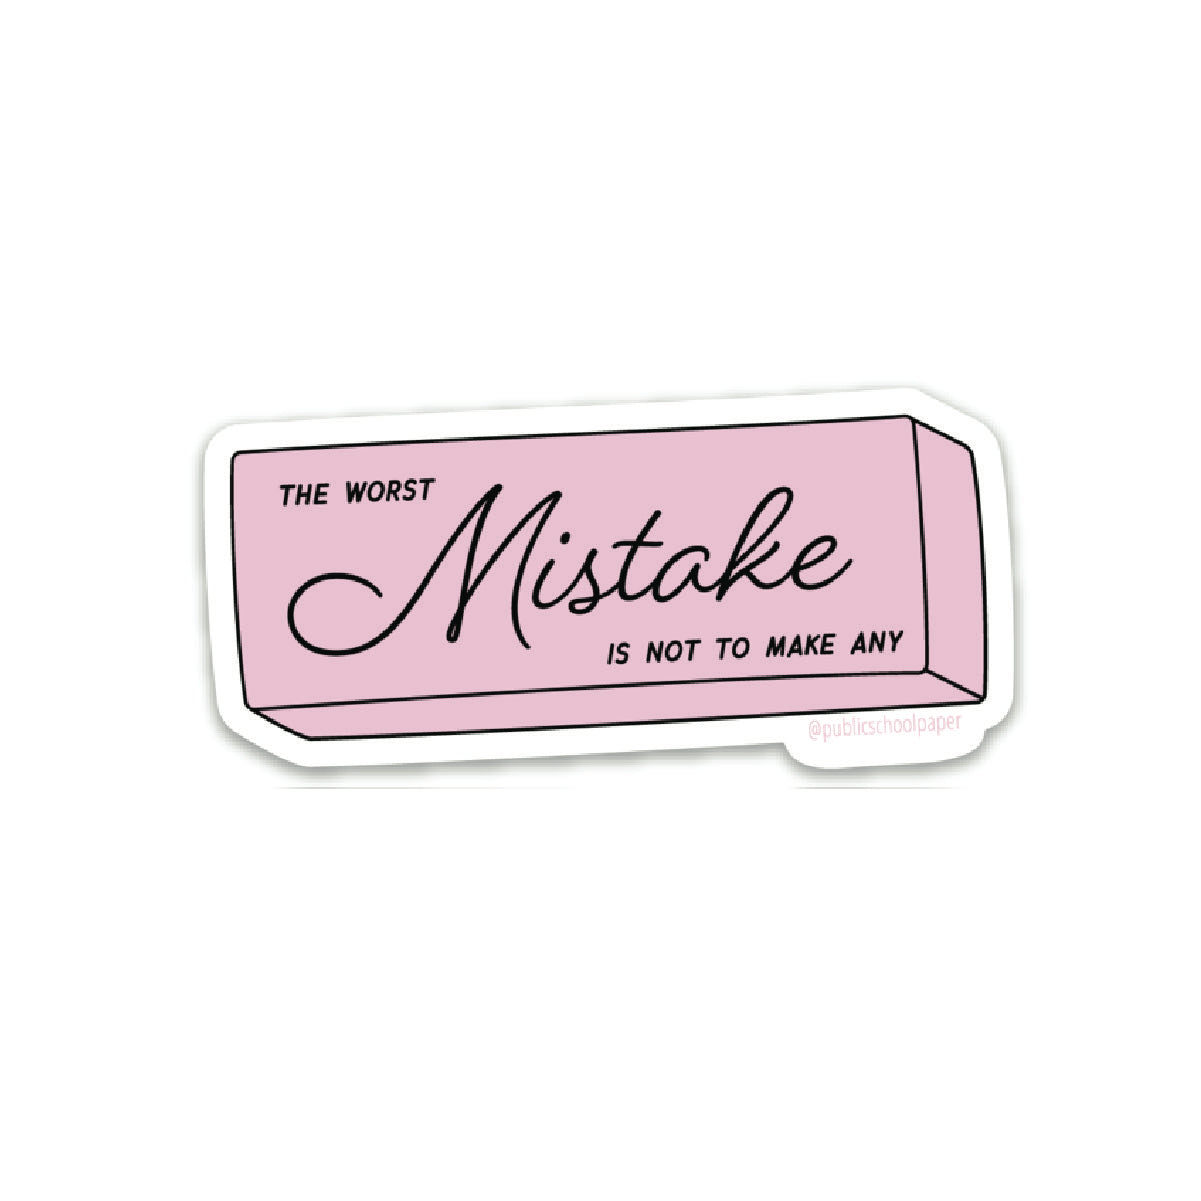 Worst Mistake Vinyl Sticker